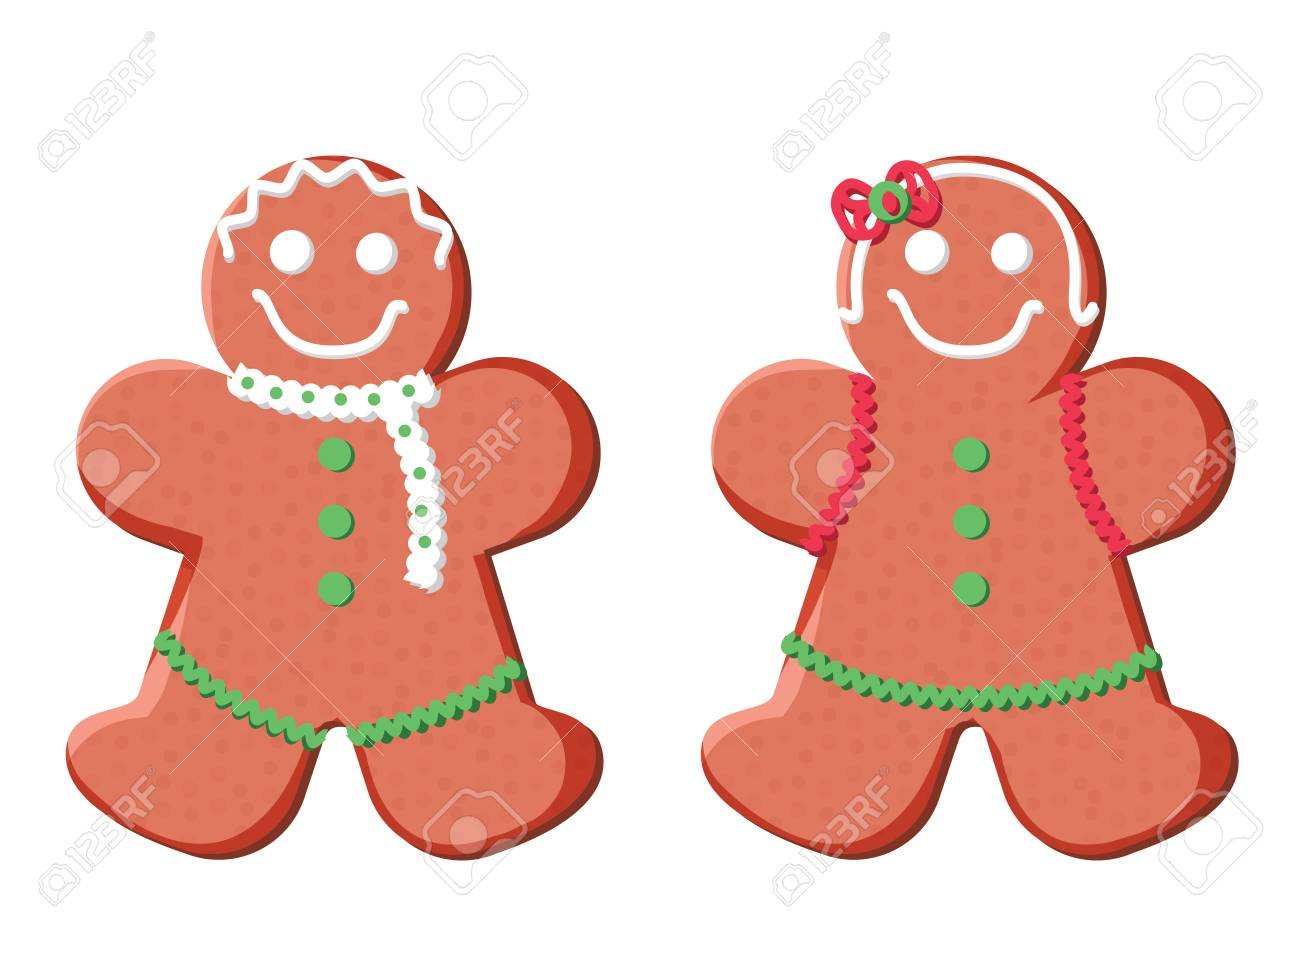 Holiday gingerbread man and woman cookie. Cookie in shape of man with colored icing. Happy new year decoration. Merry christmas holiday. New year xmas celebration. Vector illustration in flat style. - 127716641